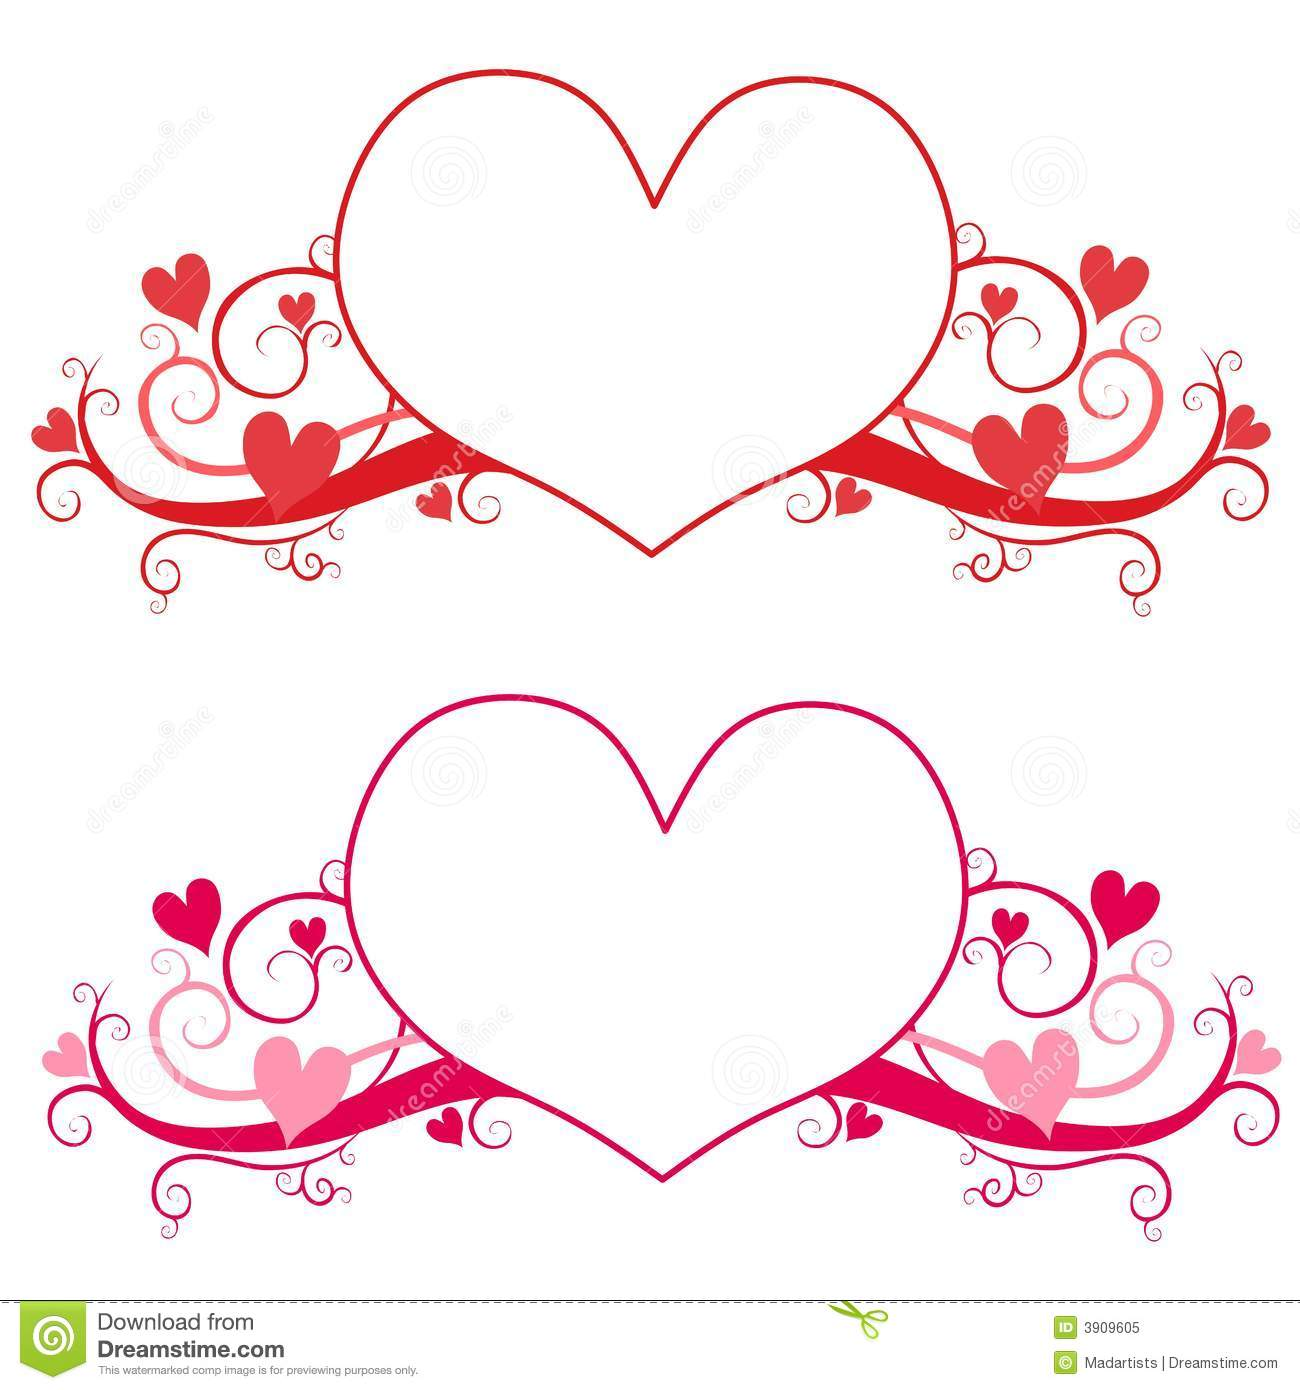 hanprint art for valentine's day - Valentine s Day Heart Logo Labels Royalty Free Stock